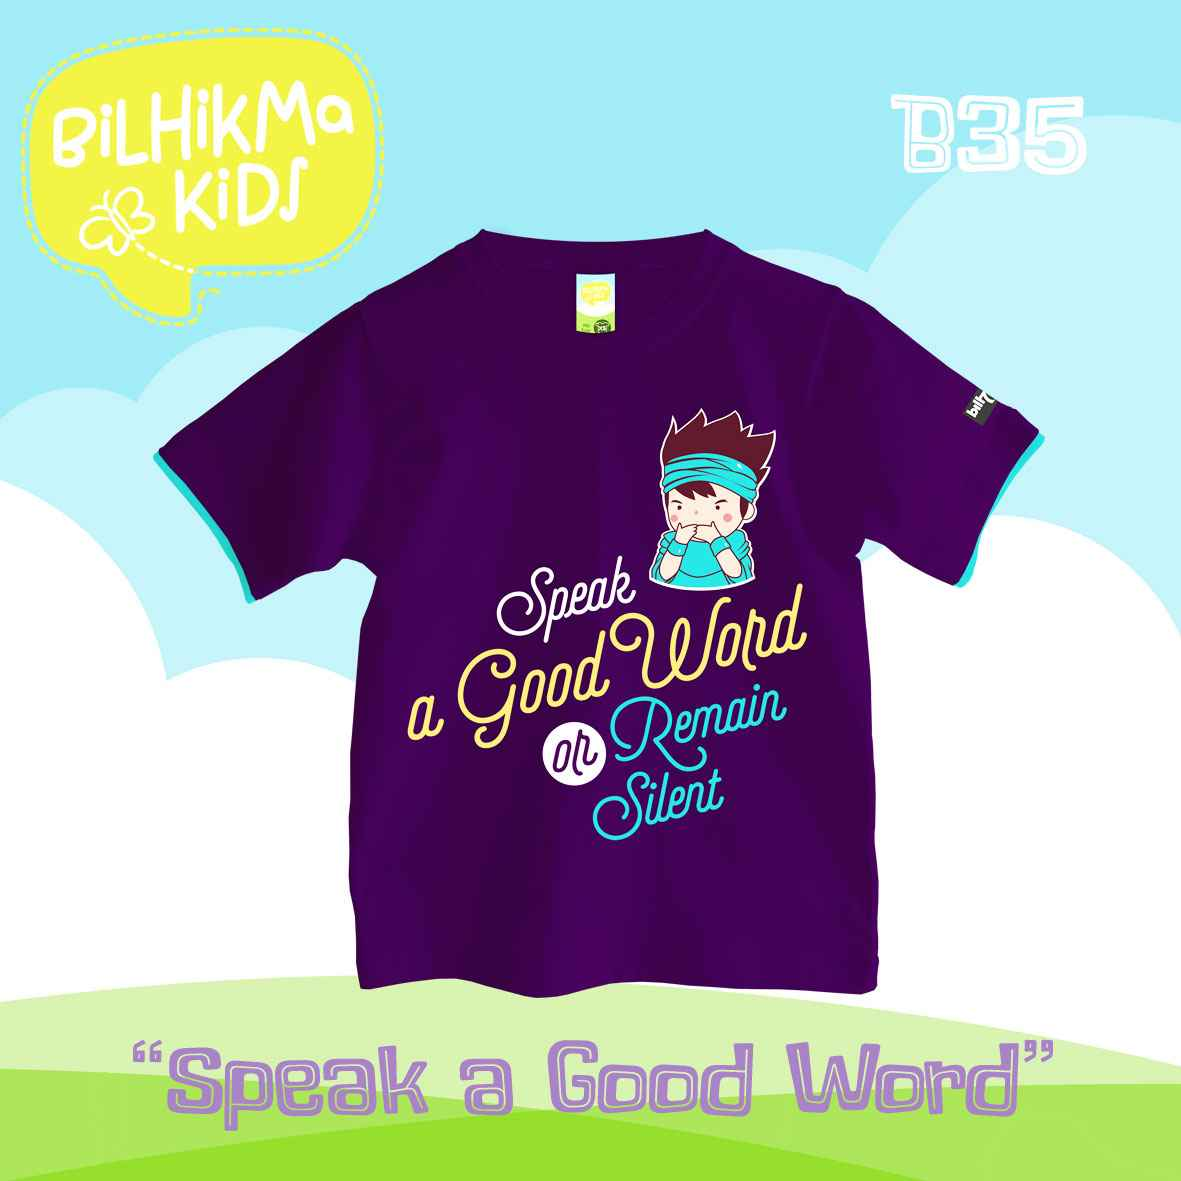 Bilhikma BILH - B35A Speak a Good Word